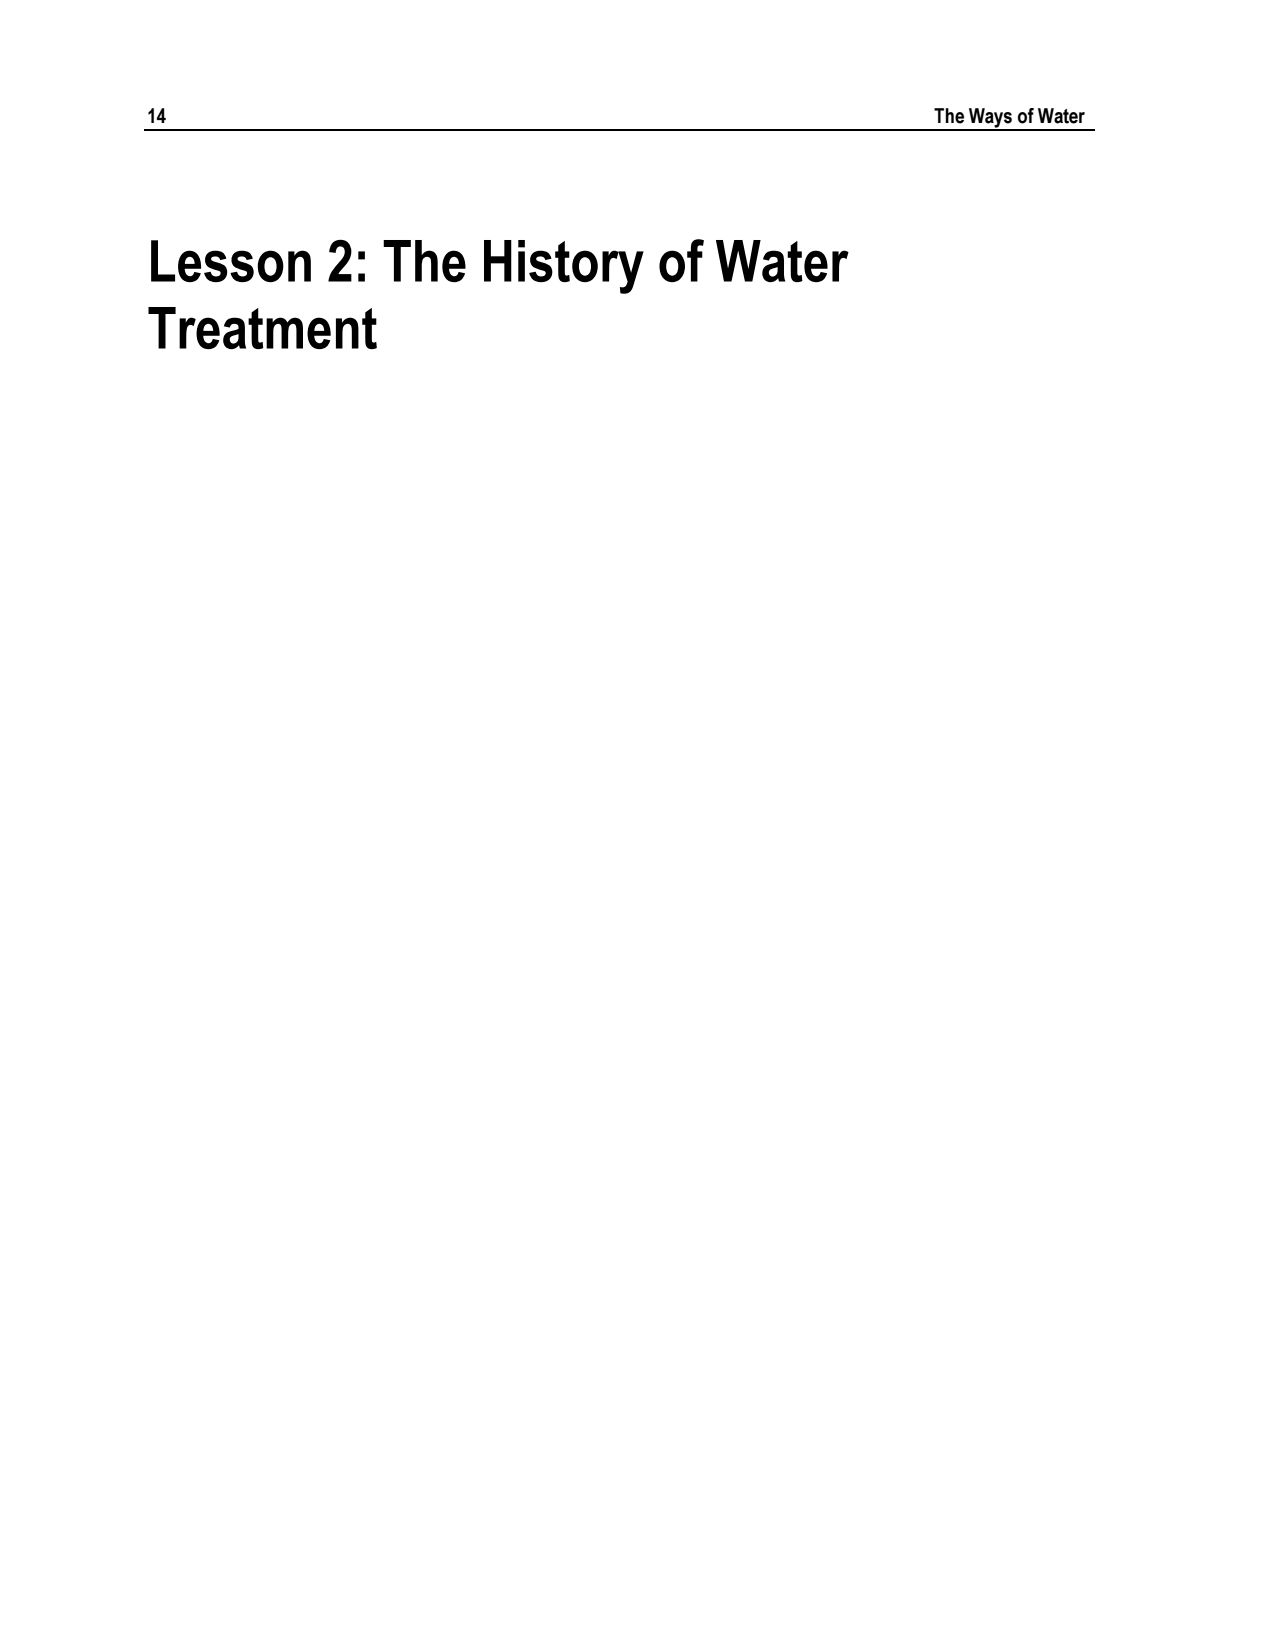 Lesson 2: Chemical Testing of Water